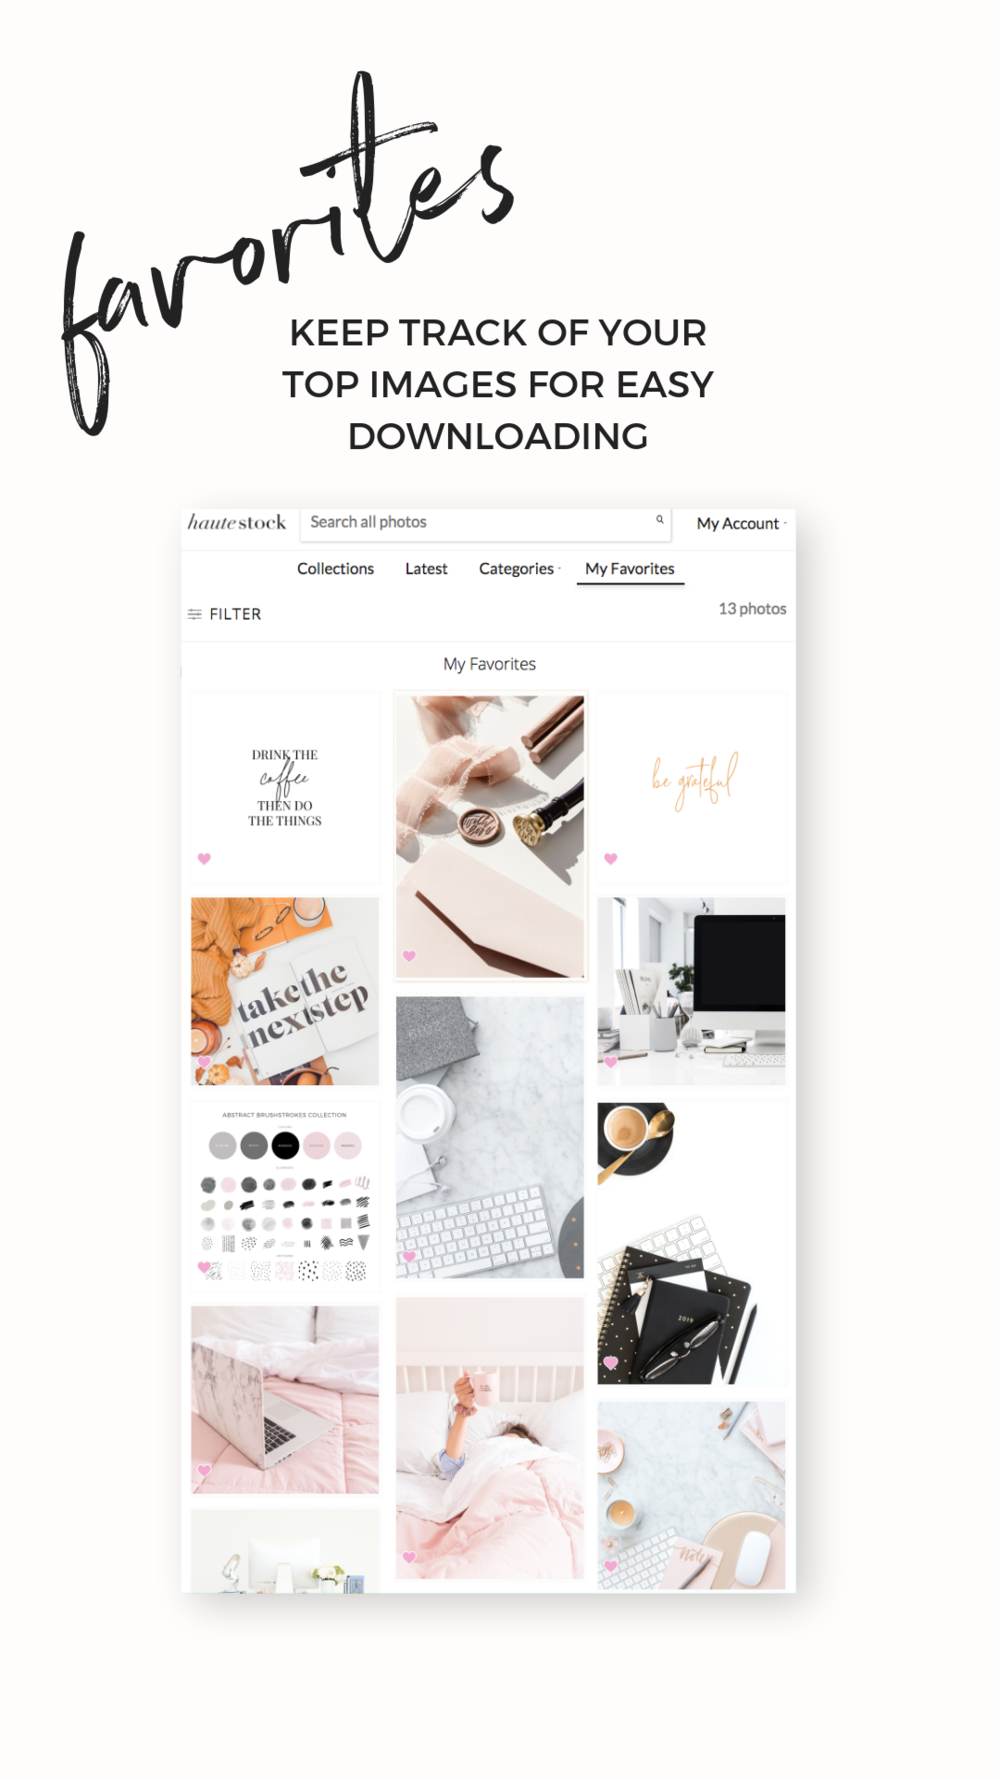 Favorite your fav Haute Stock Images so they are all in one place for easy viewing / downloading! The Favorites feature is perfect for gathering inspiration for rebrands, new projects, graphics ideas, and more.